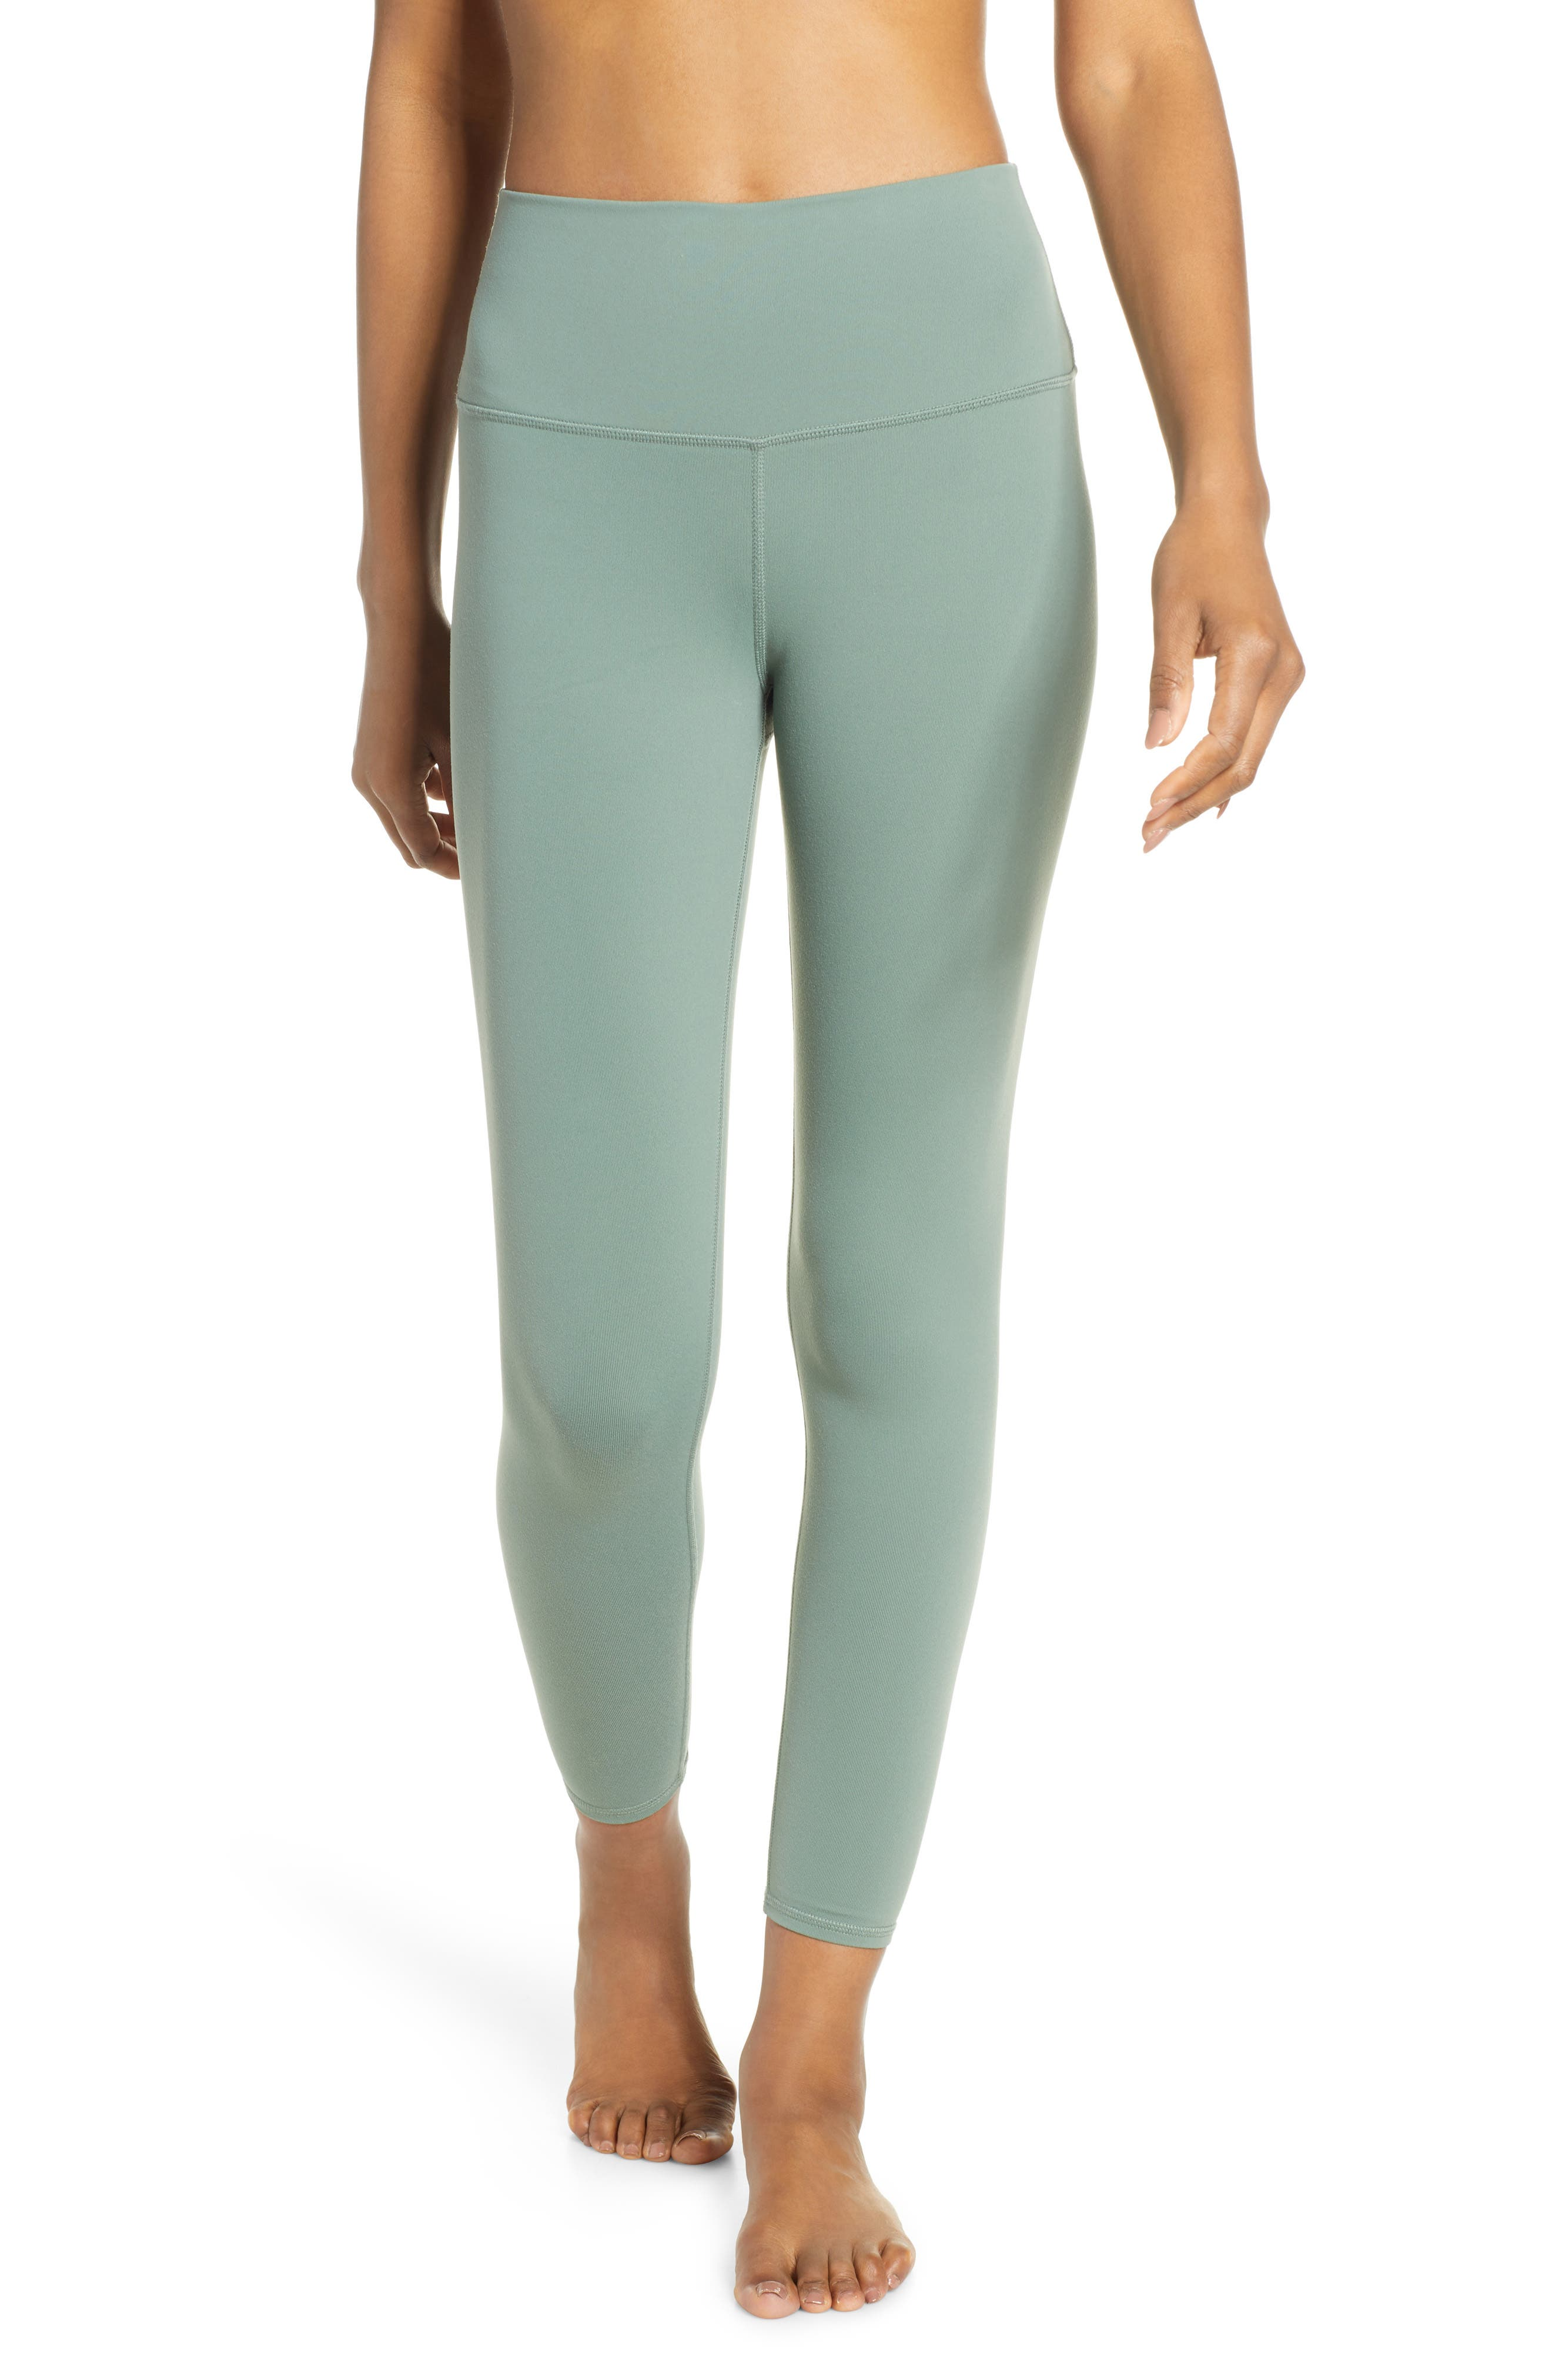 ALO Airbrush 7/8 High Waist Leggings, Main, color, 363